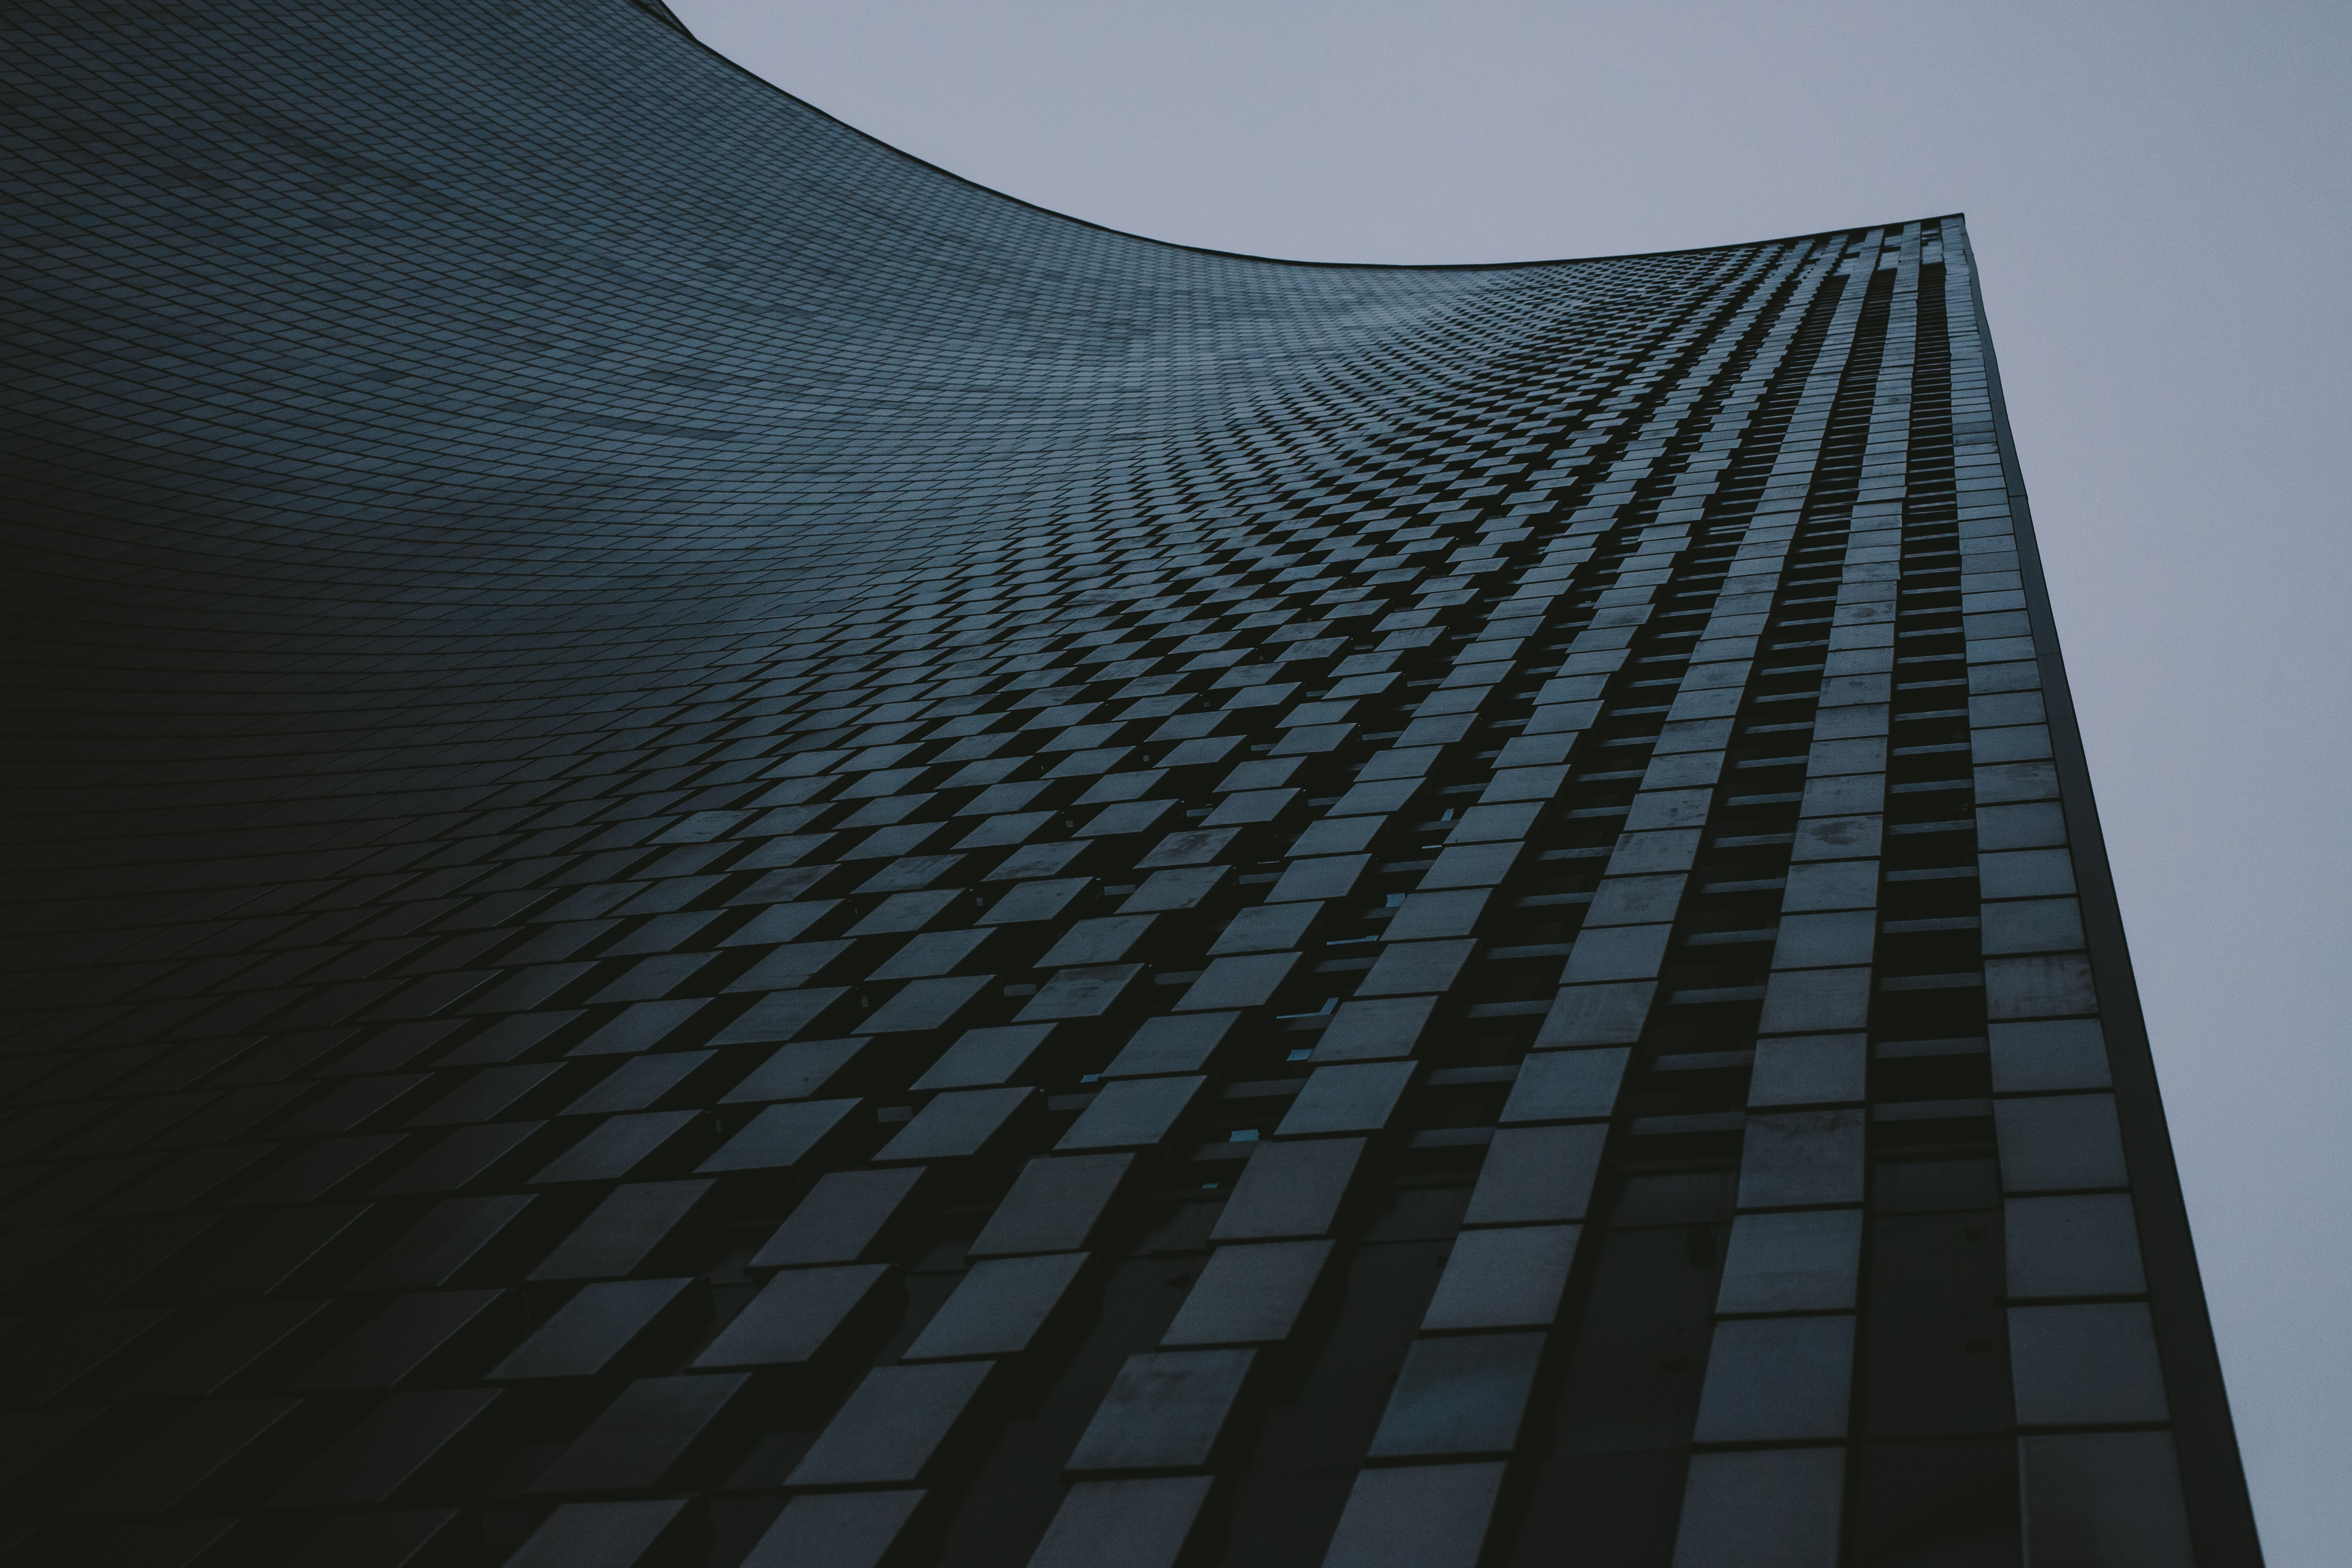 low-angle photography of high-rise building under gray sky